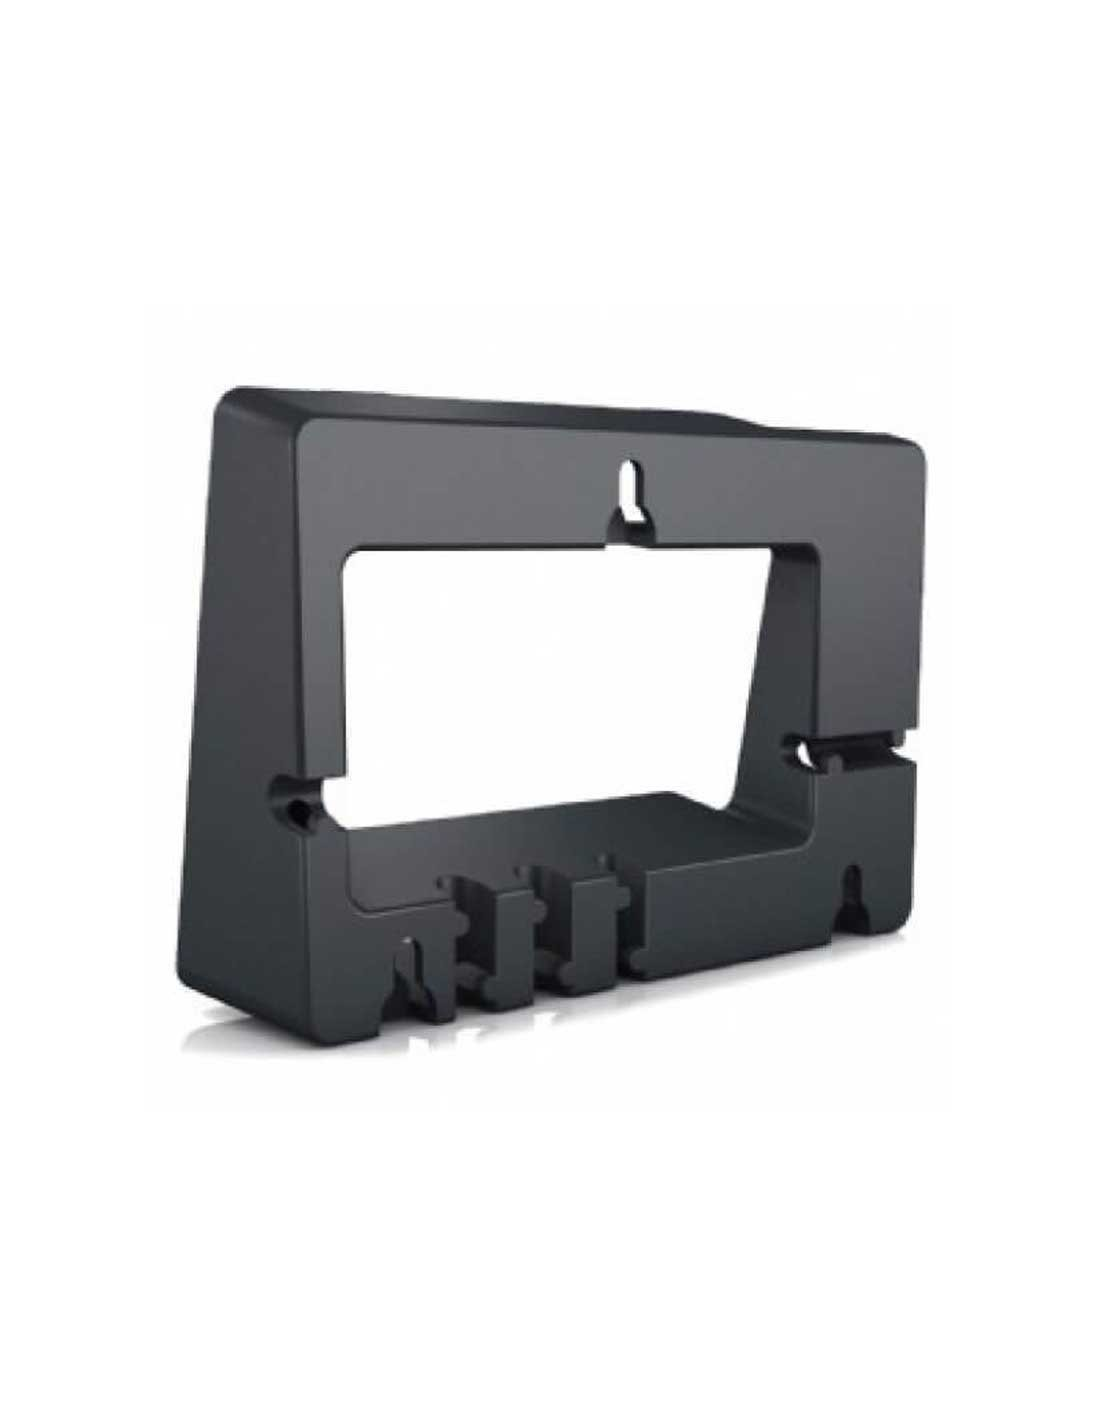 Yealink Wall Mount Bracket for T42G/T41P